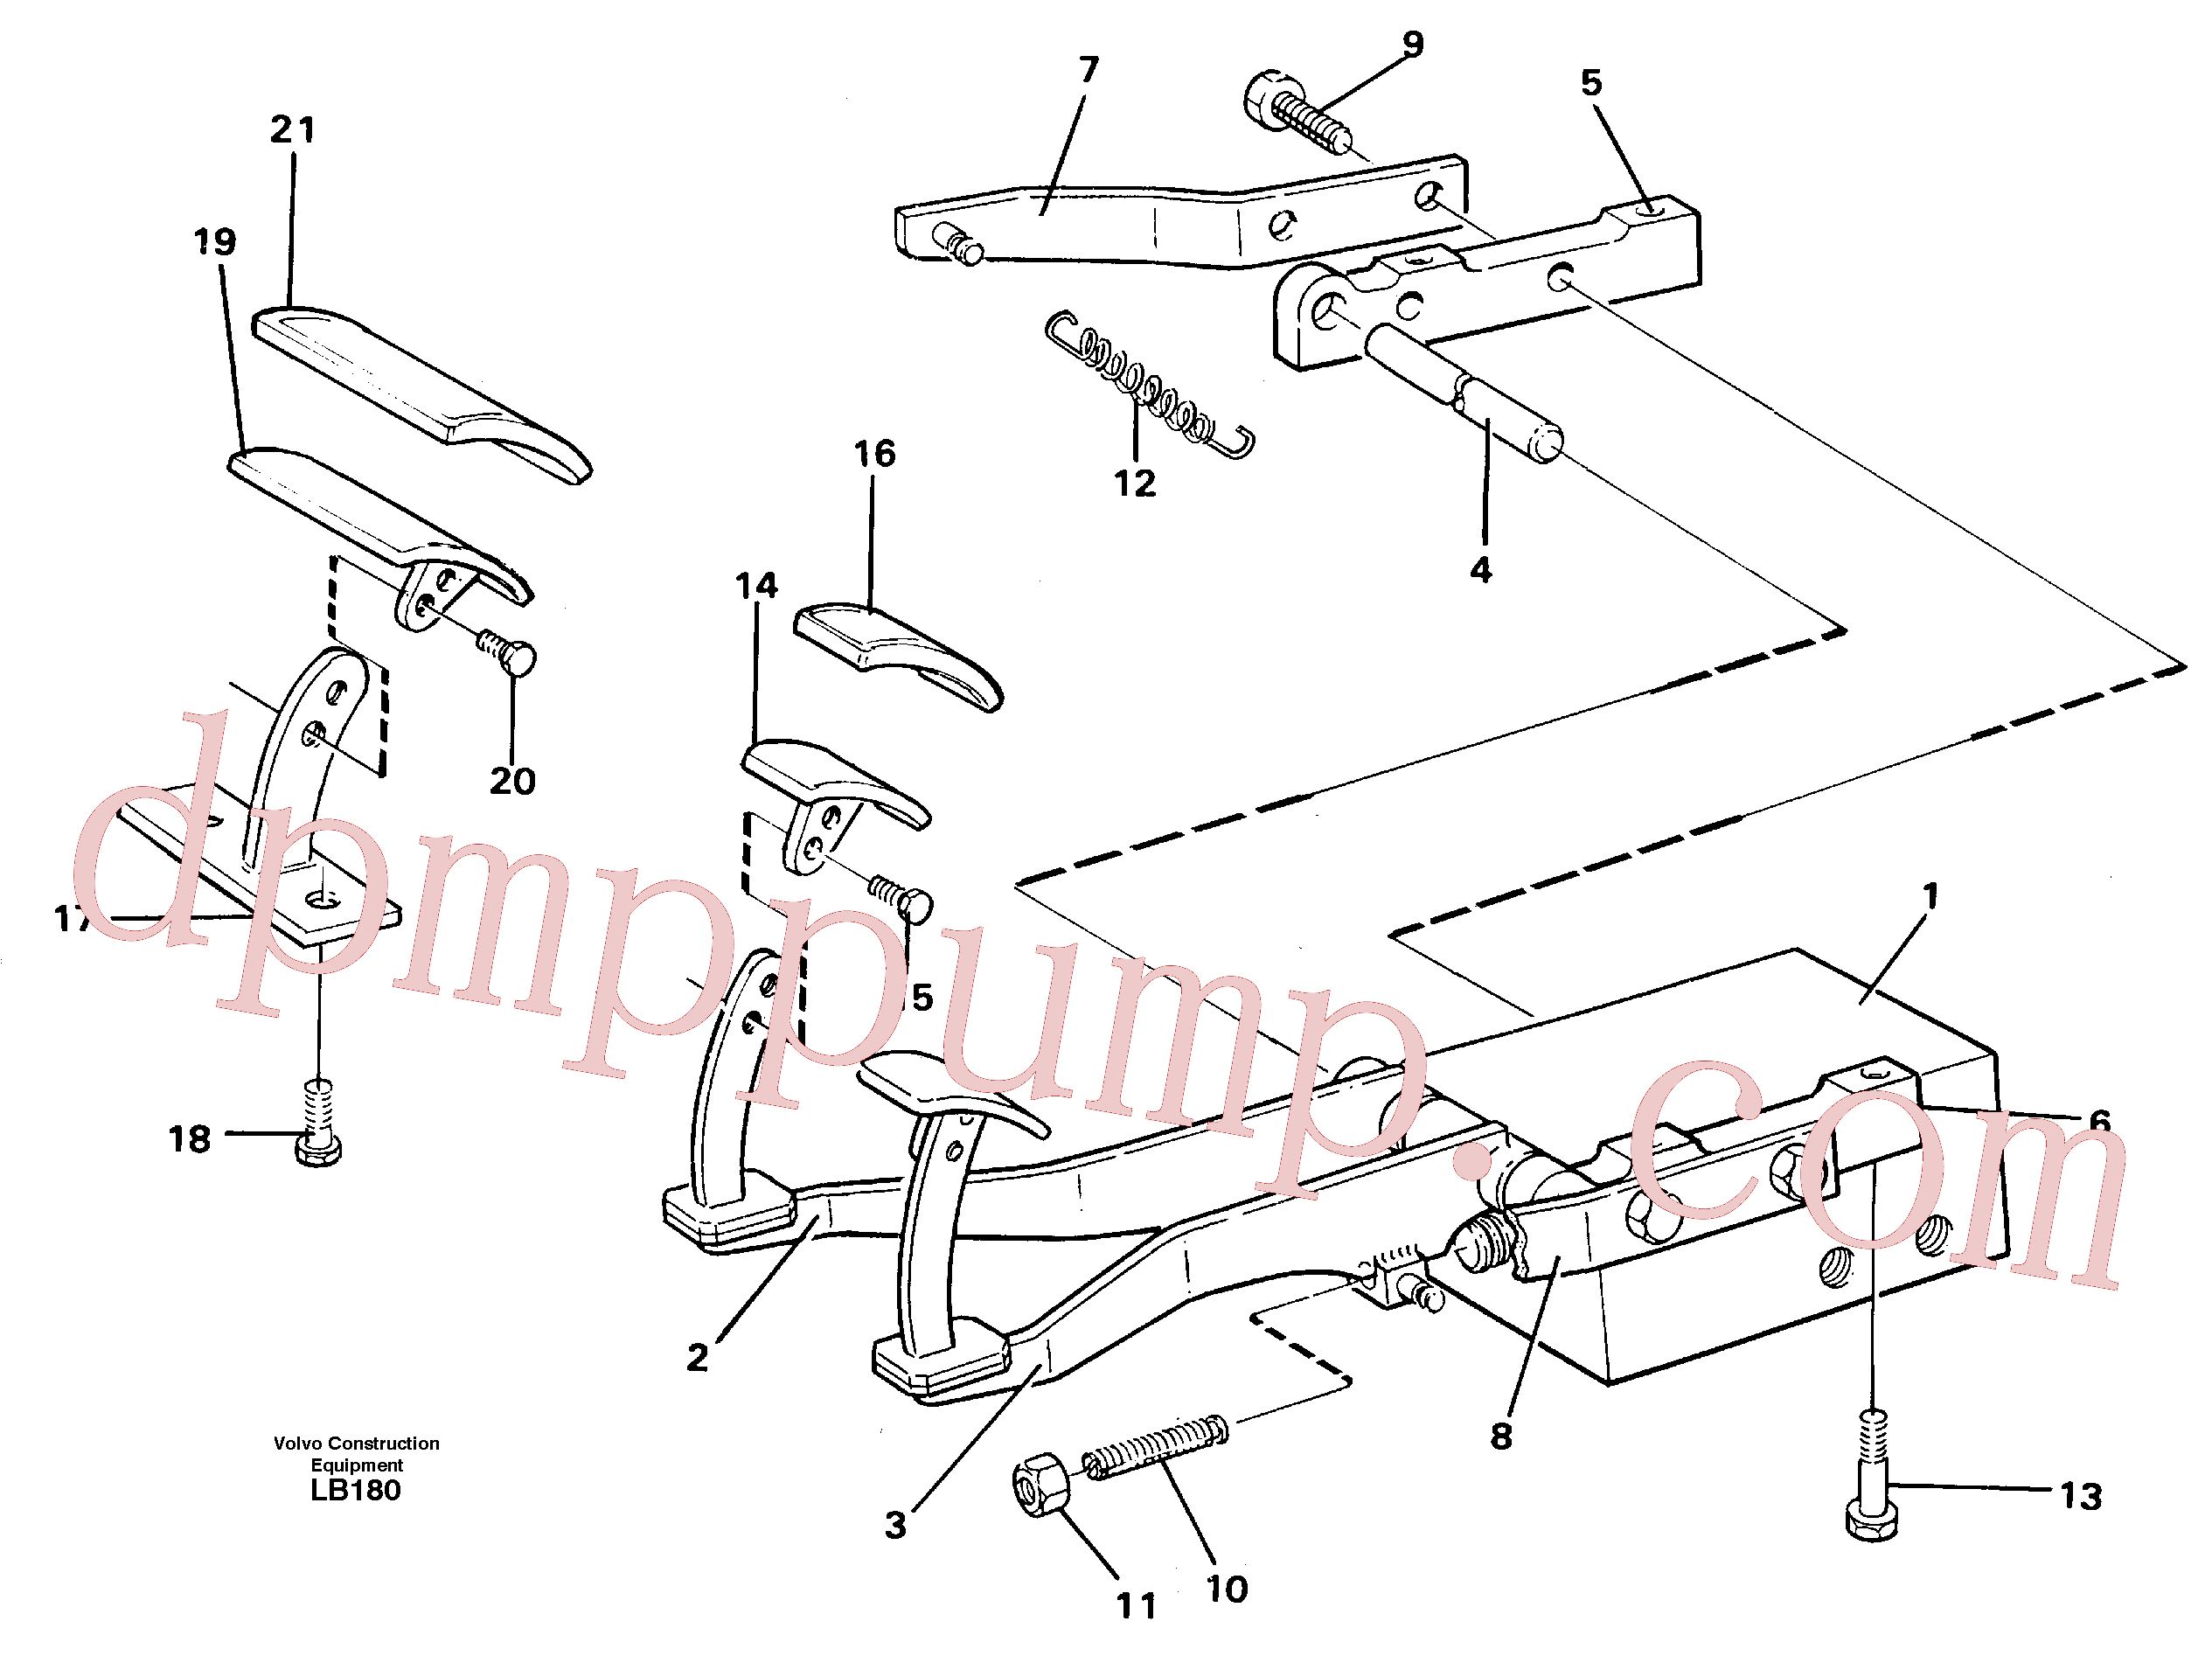 VOE14243546 for Volvo Pedal valve with foot rest(LB180 assembly)